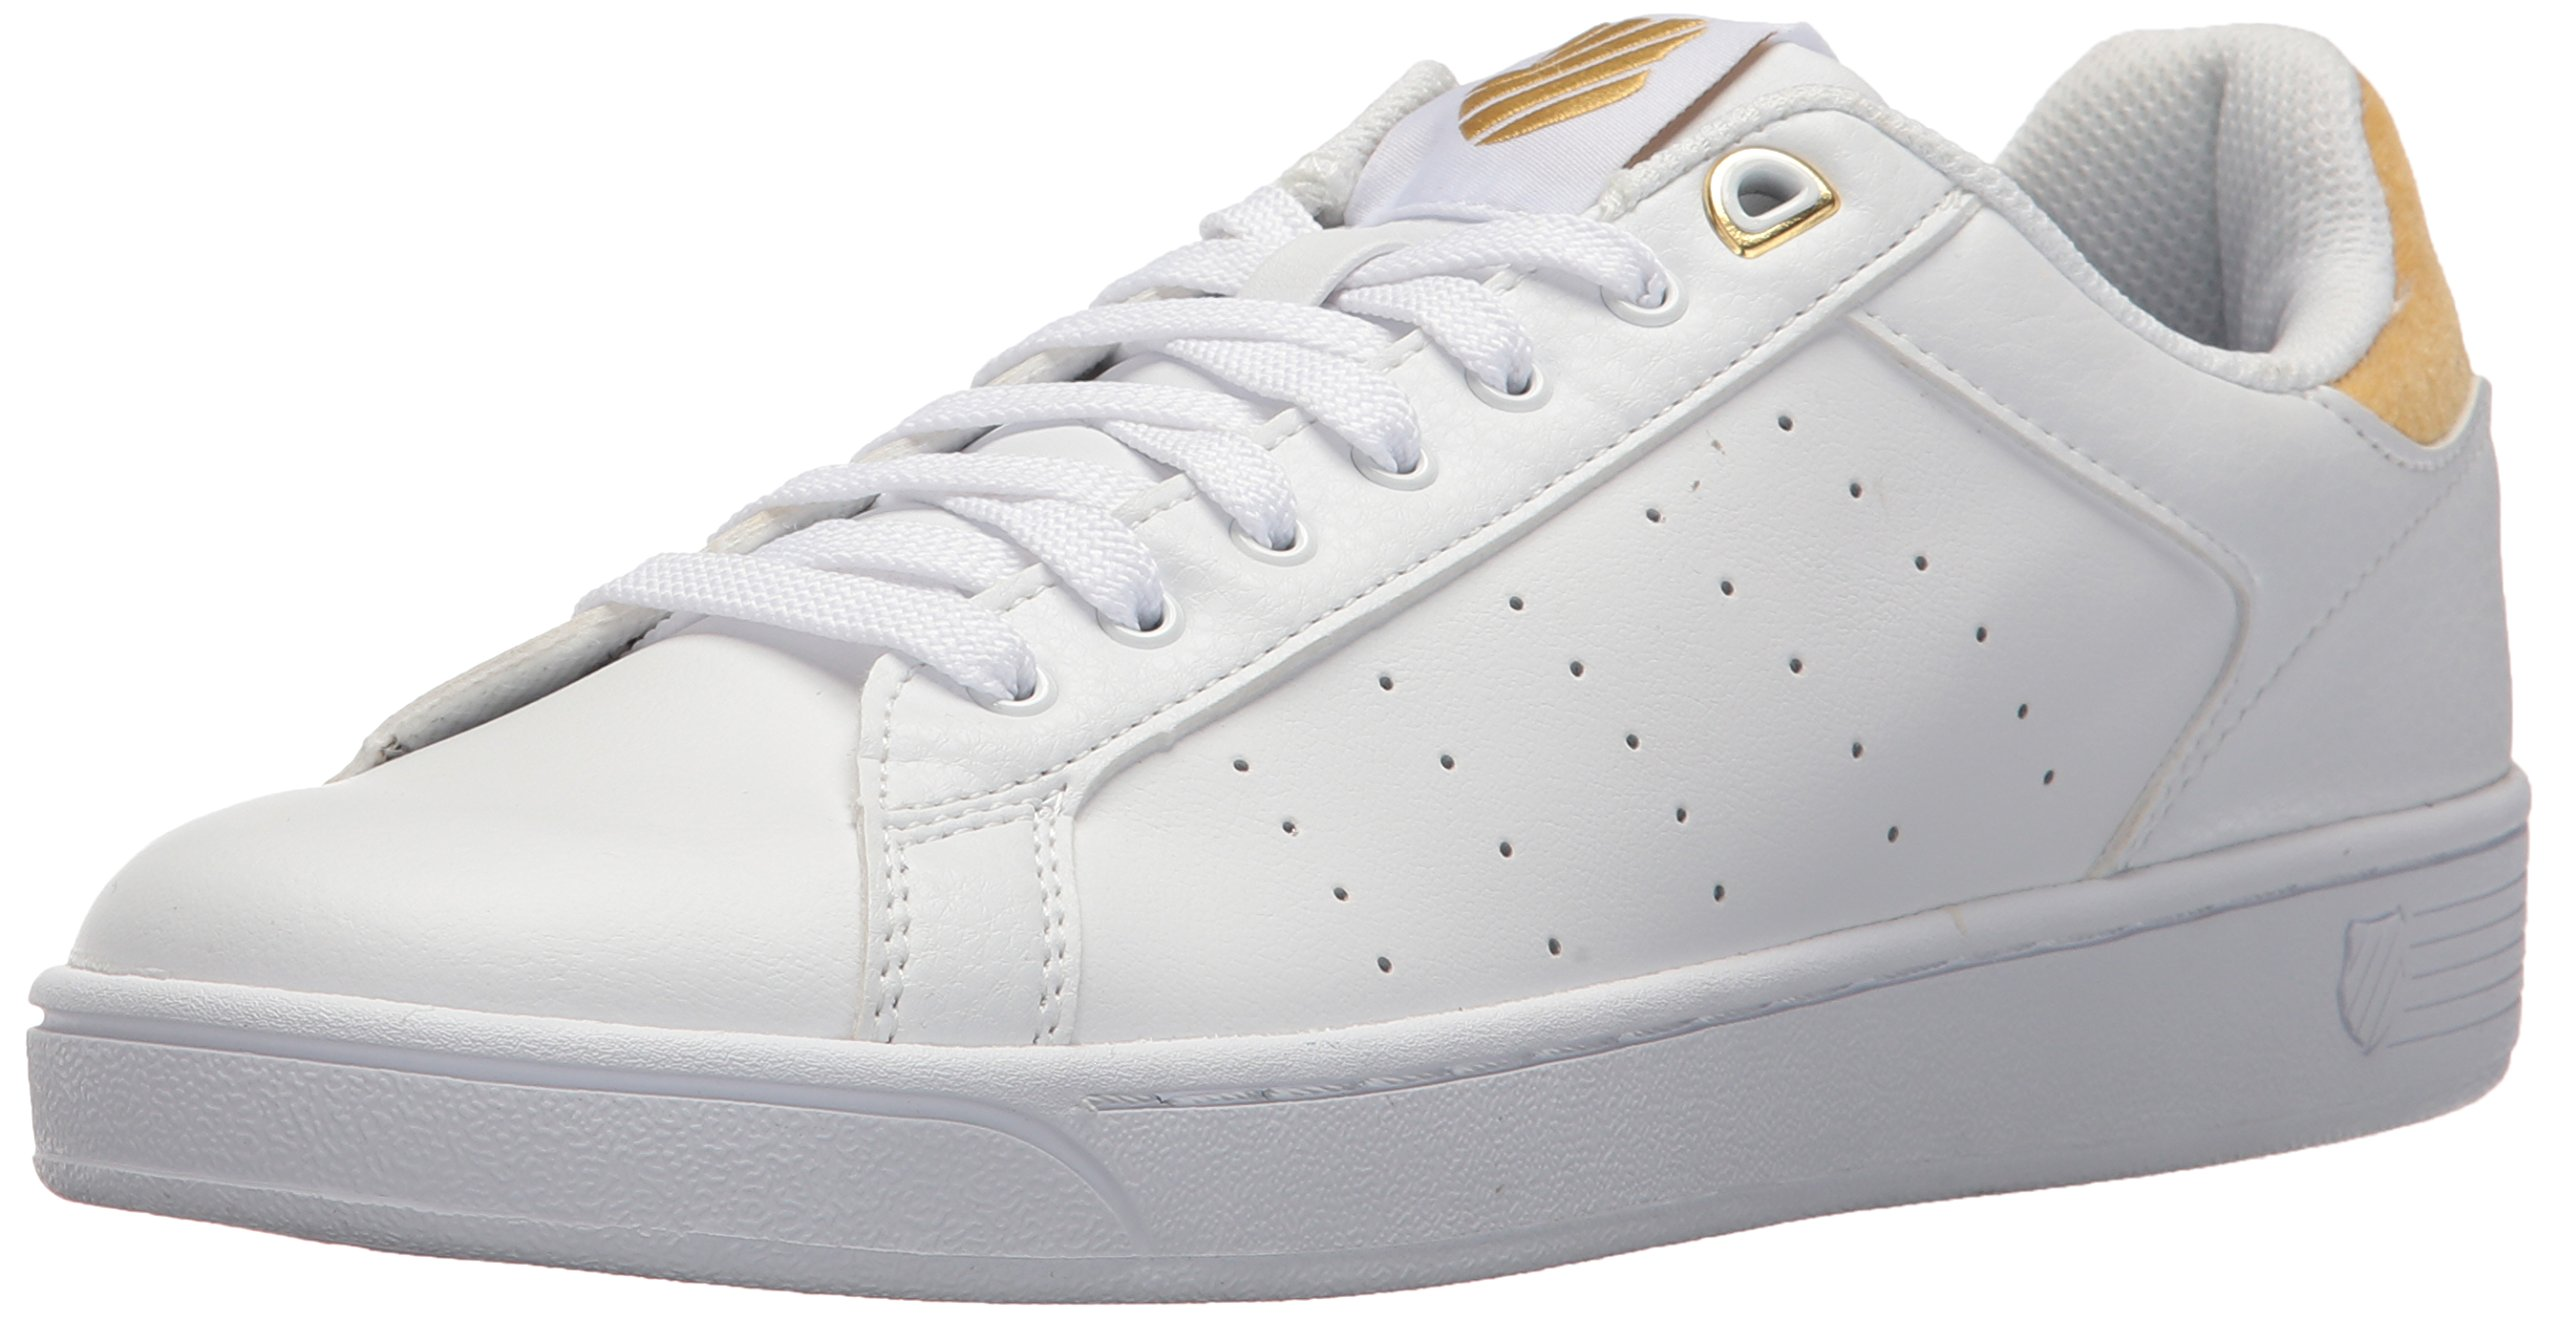 7dbb968c2a5a Galleon - K-Swiss Women s Clean Court CMF Sneaker White Bright Gold 7.5 M US